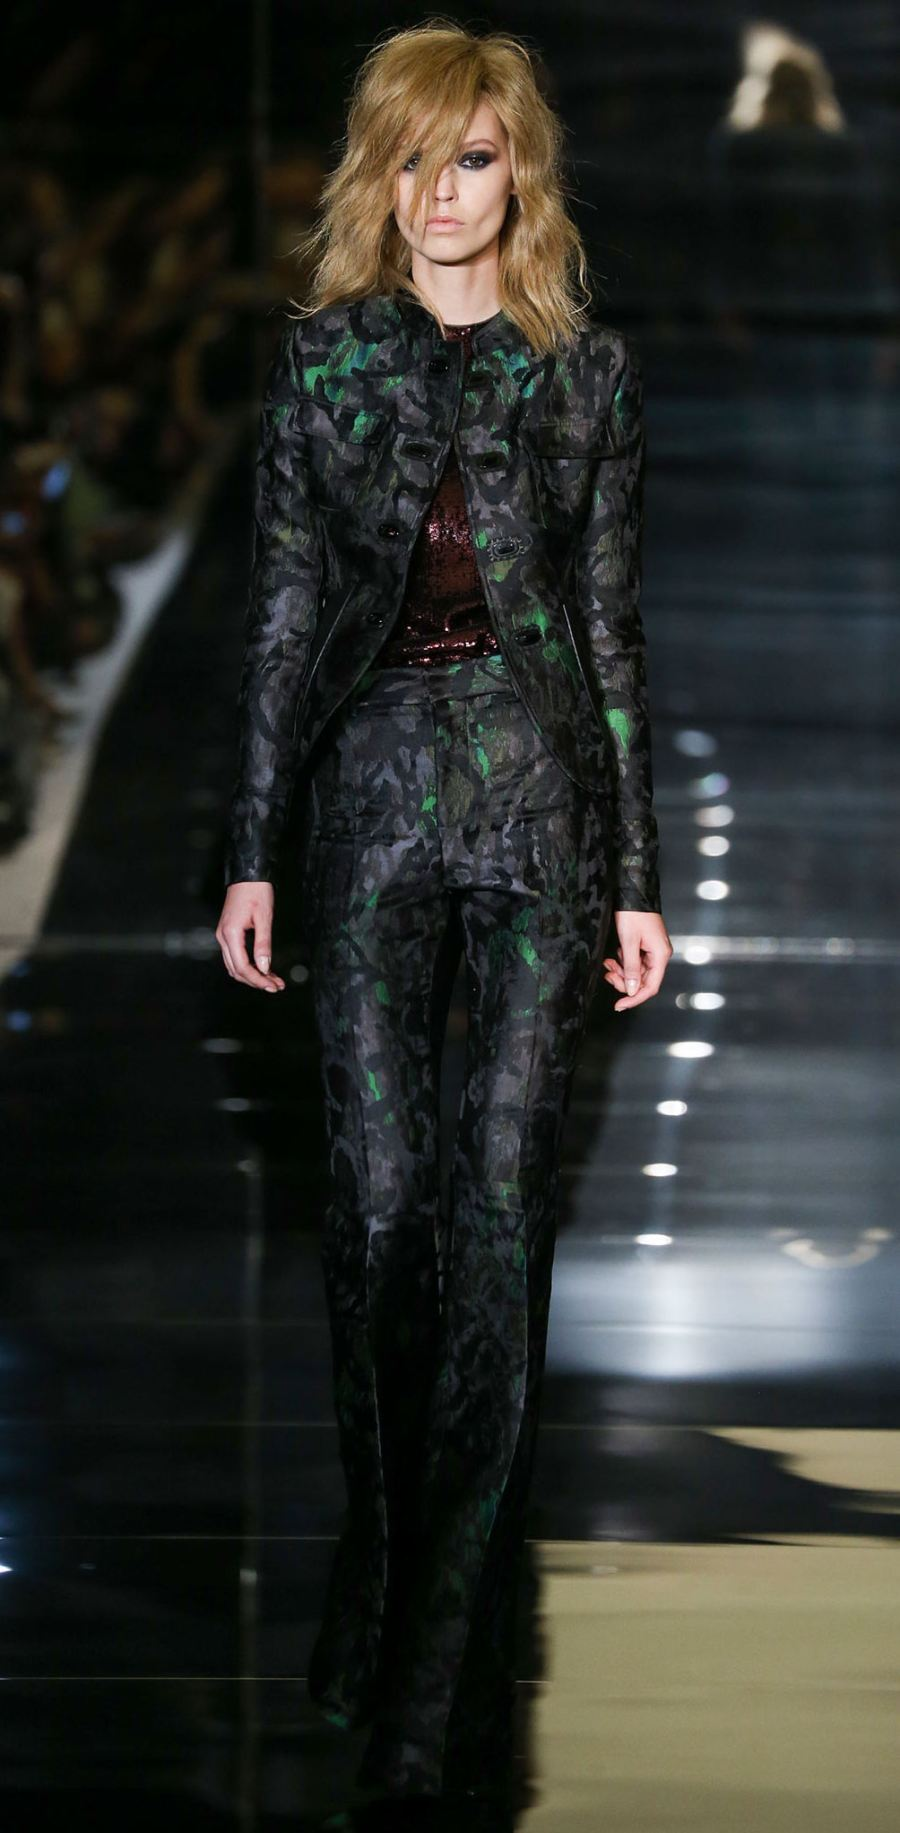 Tom Ford SS15 Brocade Suit on Exshoesme.com